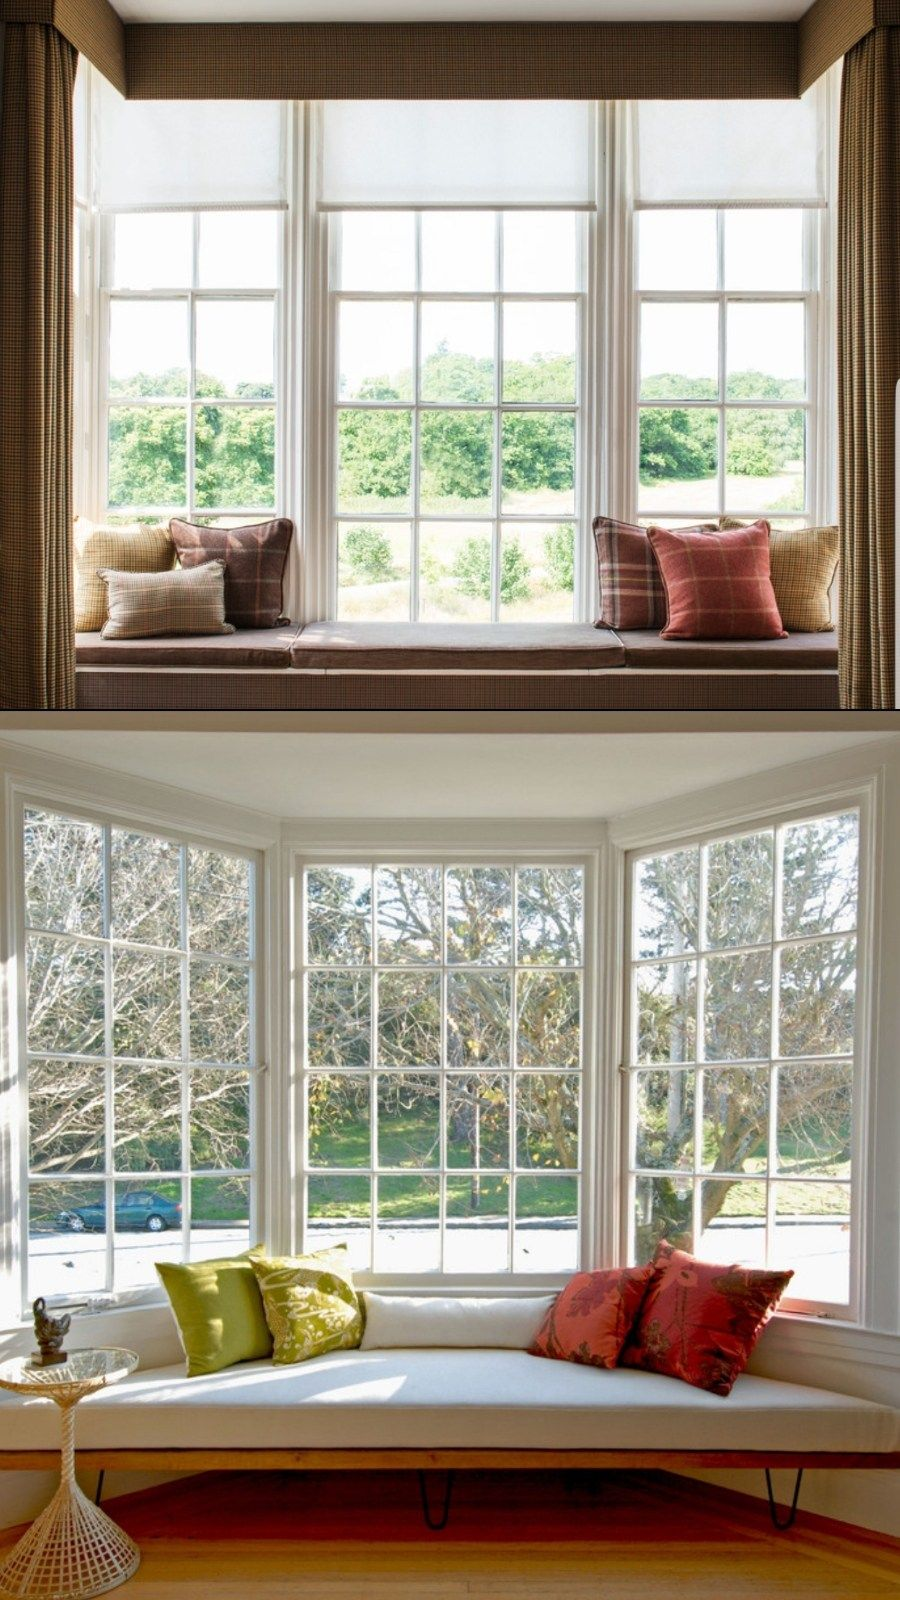 45 Decorative Bay Window Ideas Baywindow Ideas